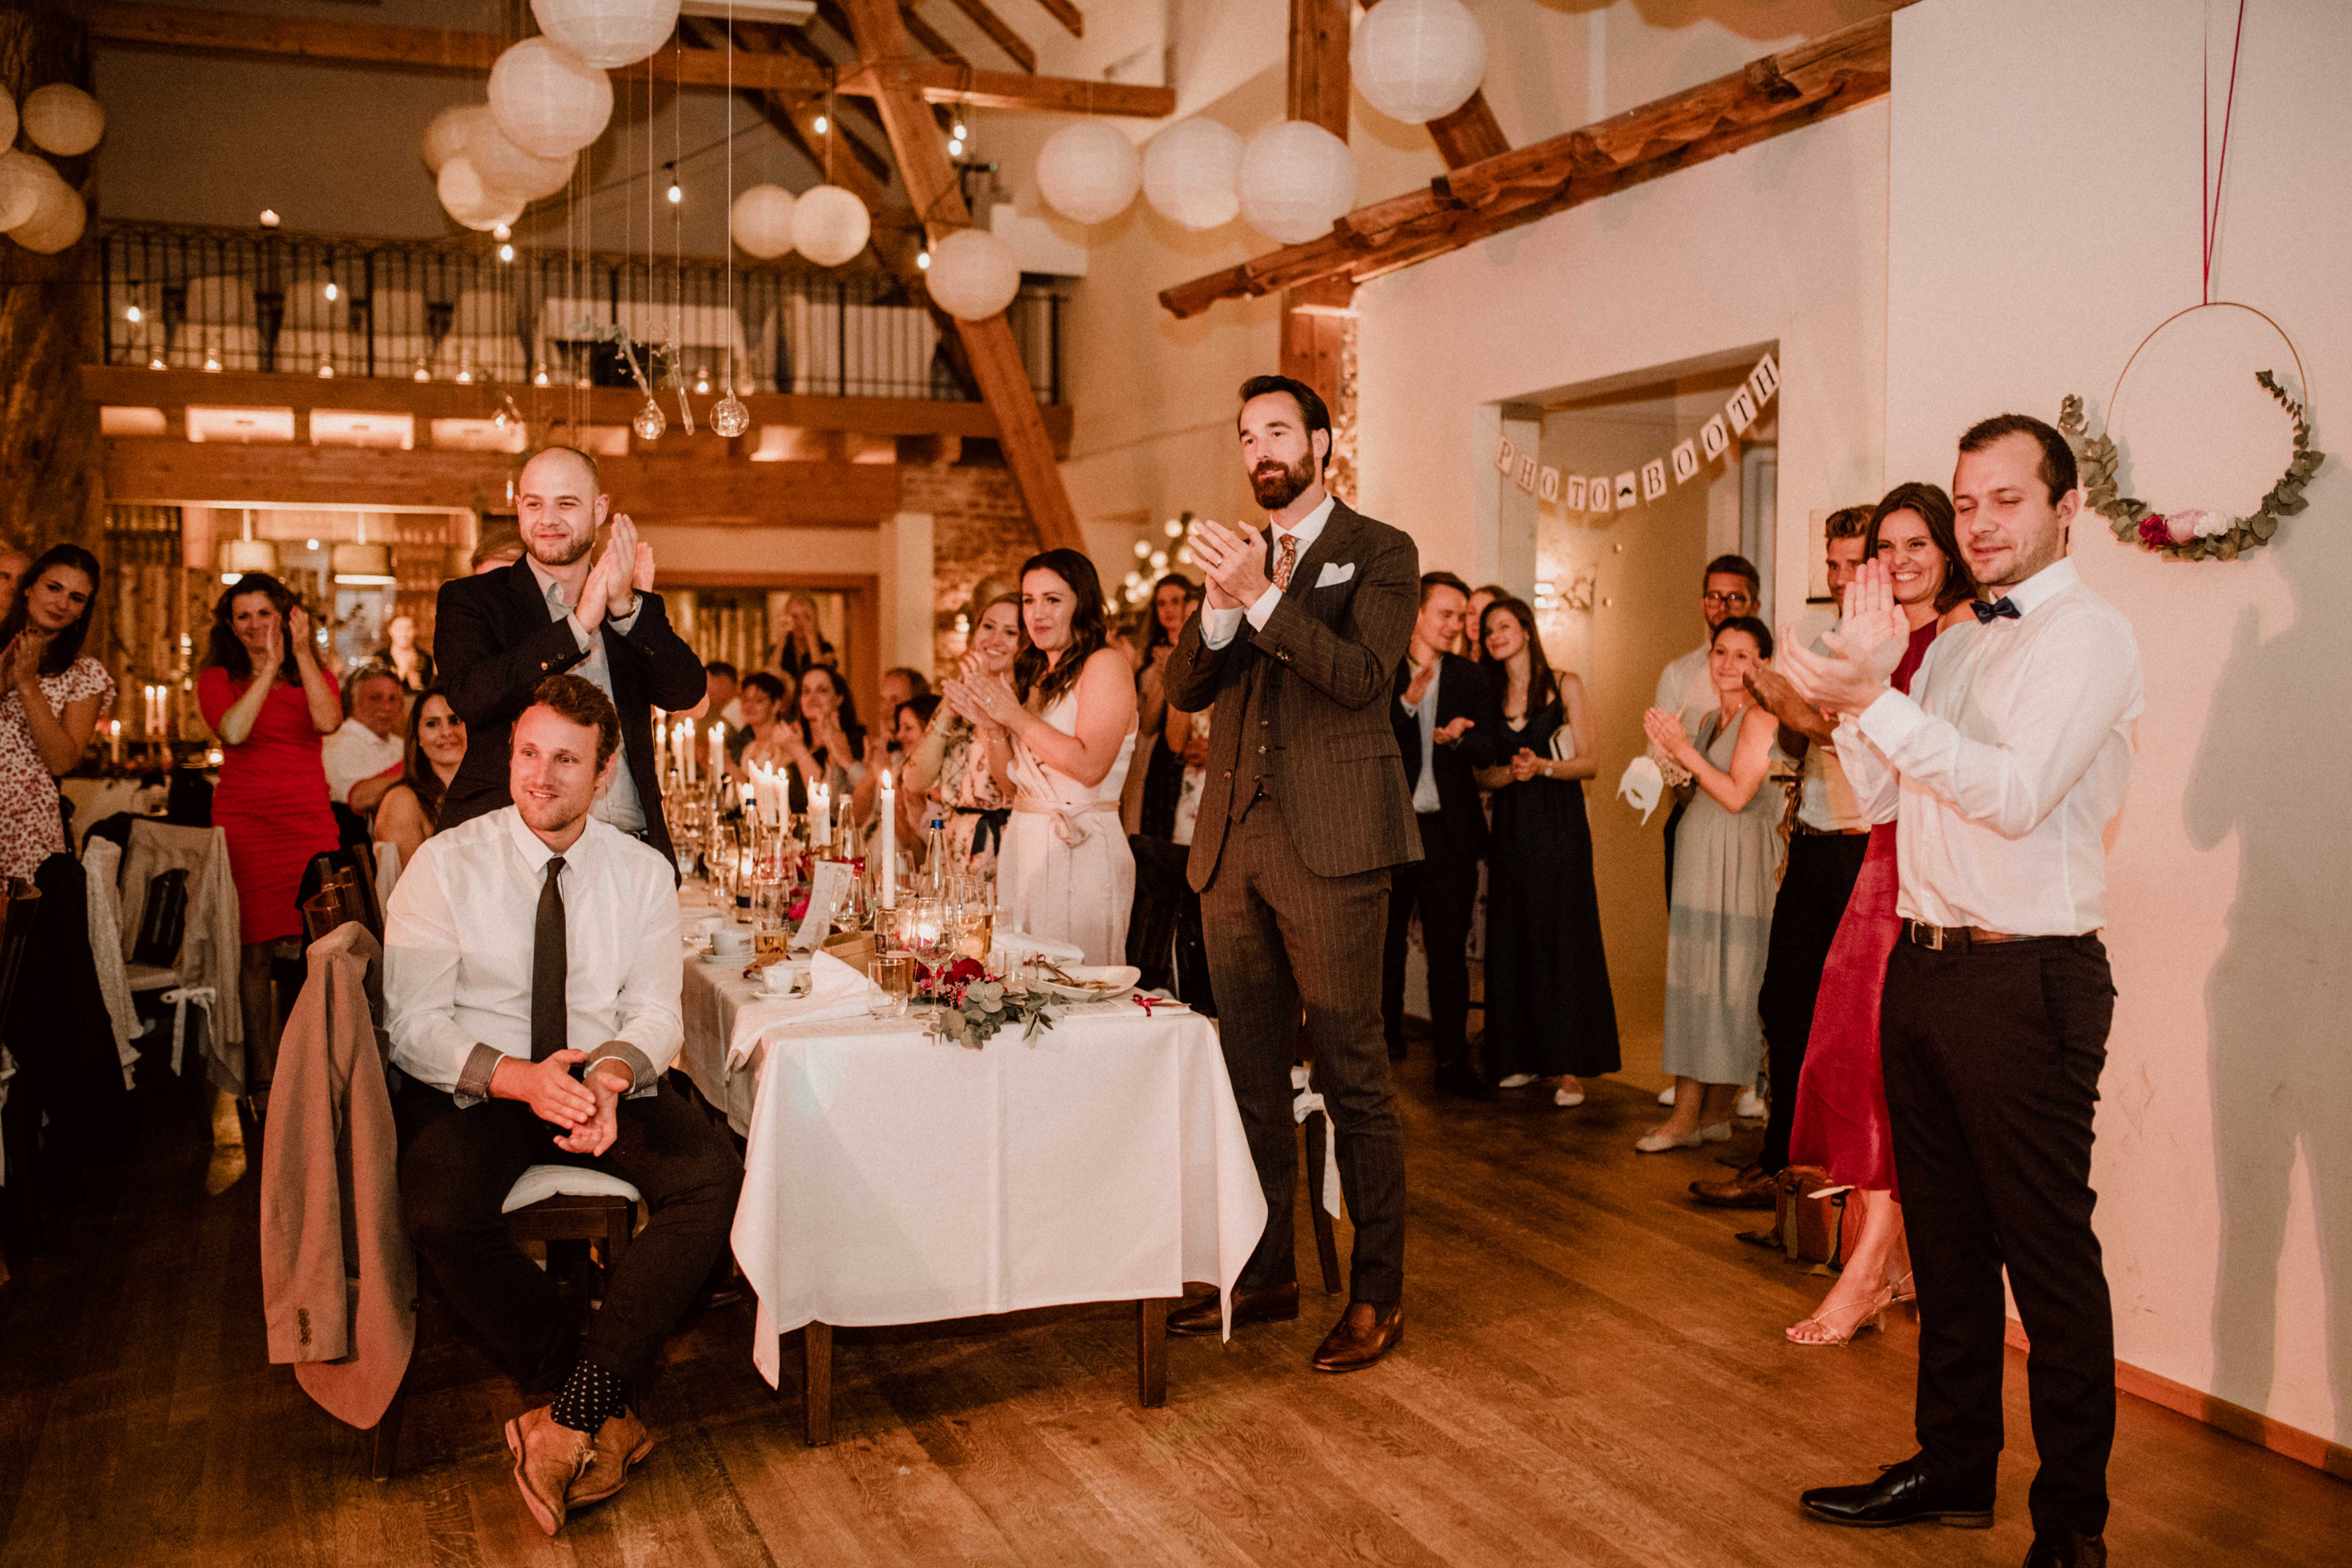 standing ovations sonja poehlmann photography wedding muenchen bayern